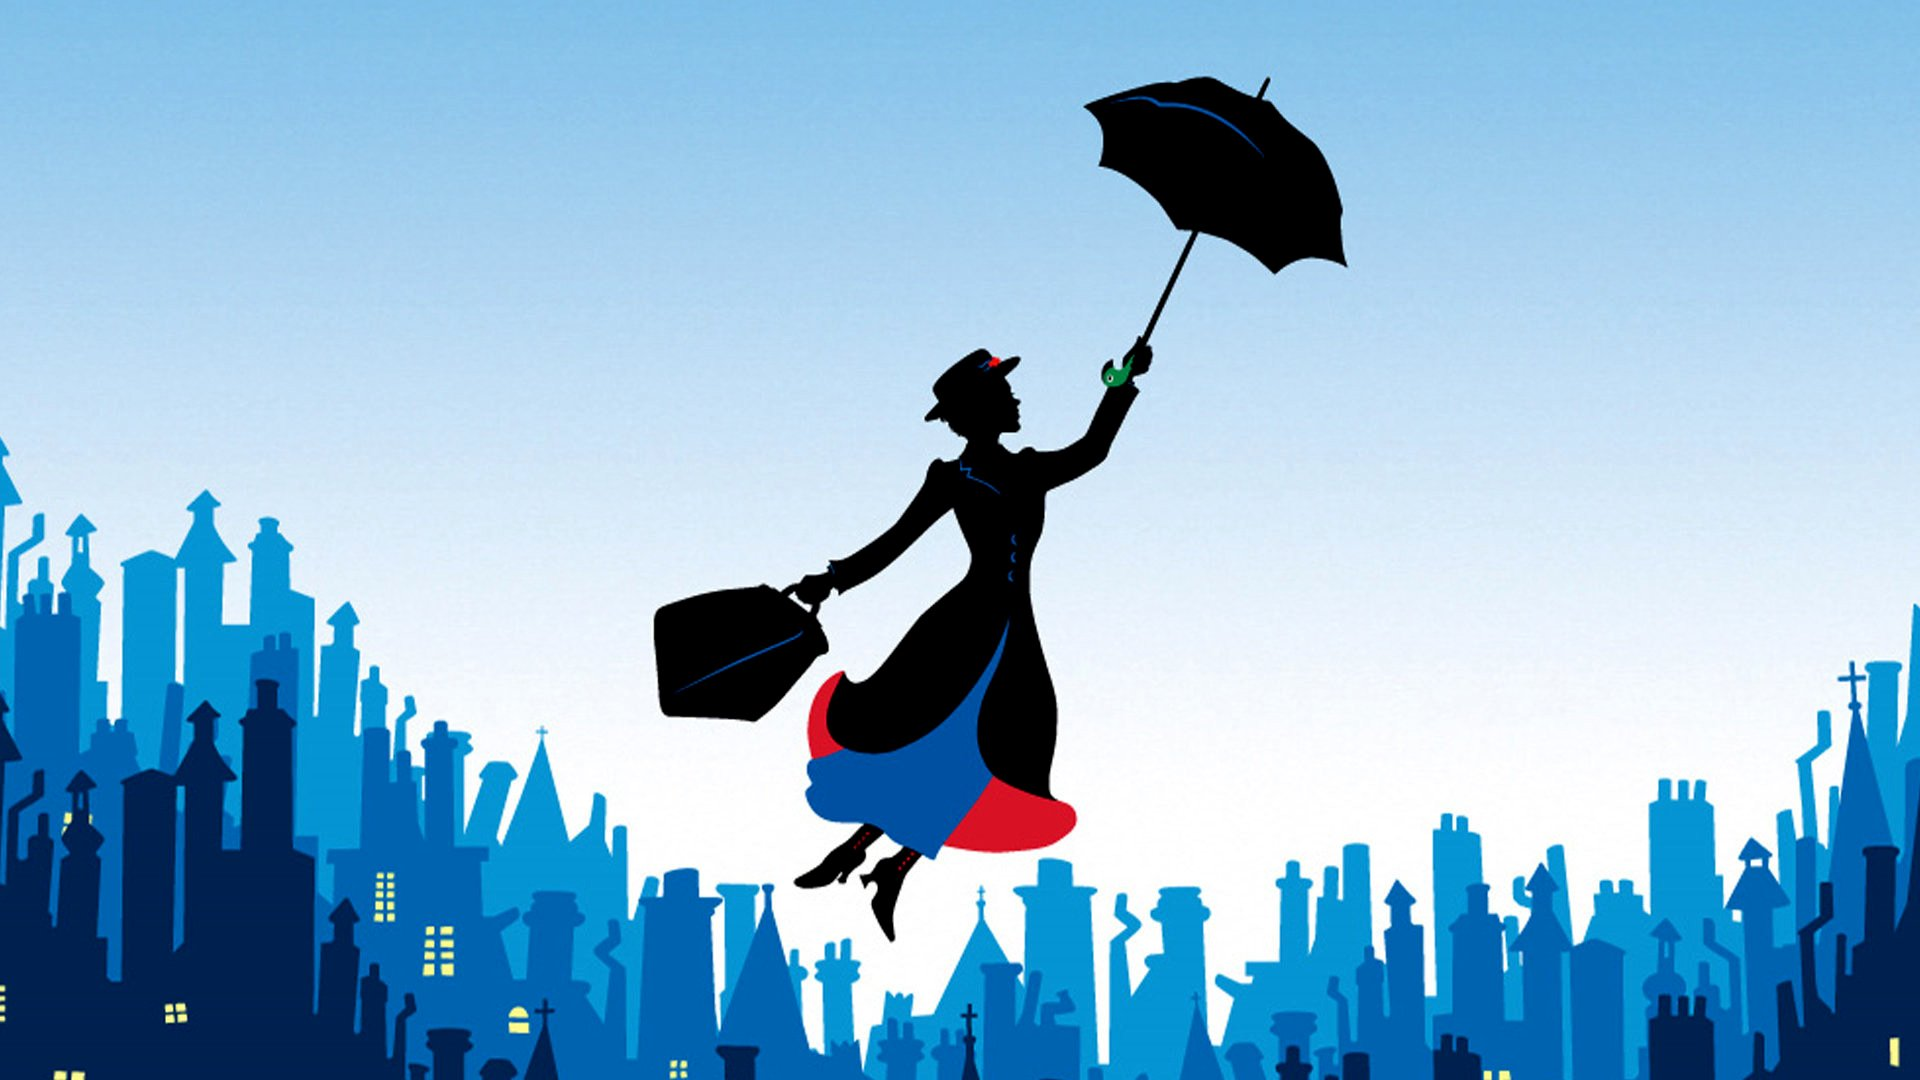 Chemin Cheminée Mary Poppins Mary Poppins Returns Un Sublime Hommage Au Film Original Les